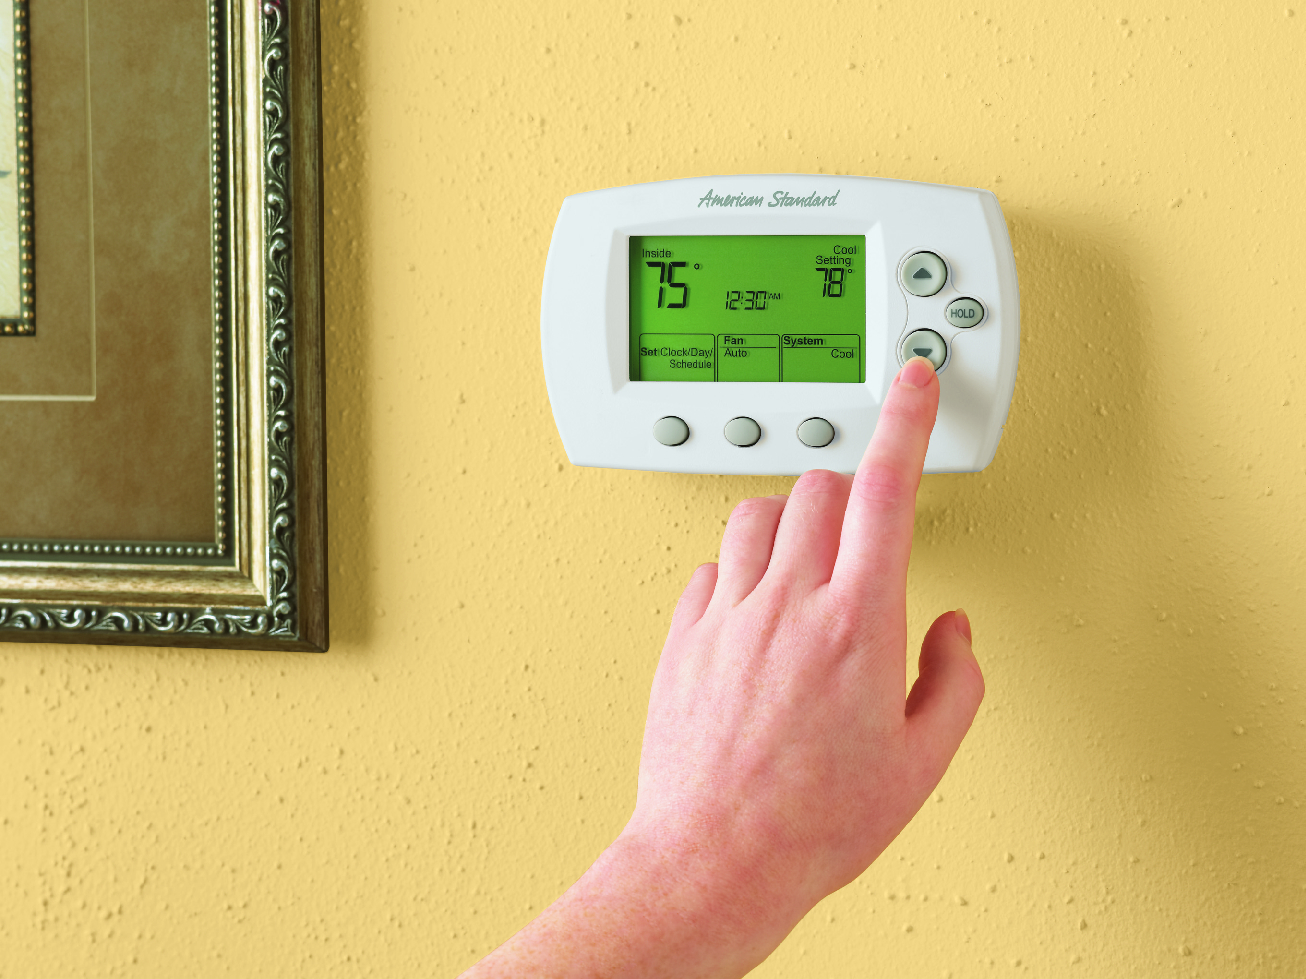 Smart Thermostats Manage Your Home Environment For More Ease And Comfort